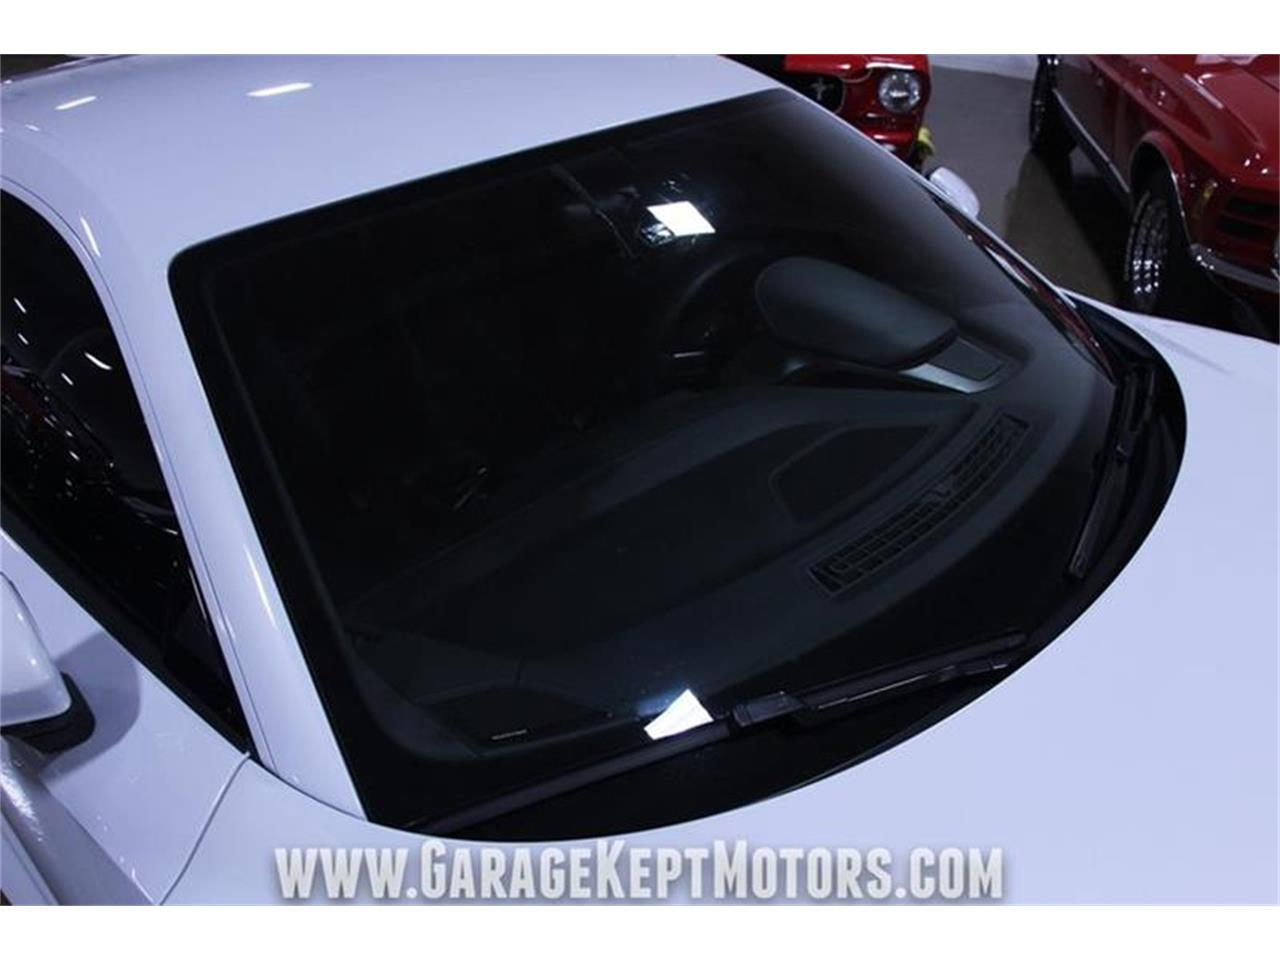 Large Picture of '17 Audi R8 - $149,900.00 Offered by Garage Kept Motors - QBYC